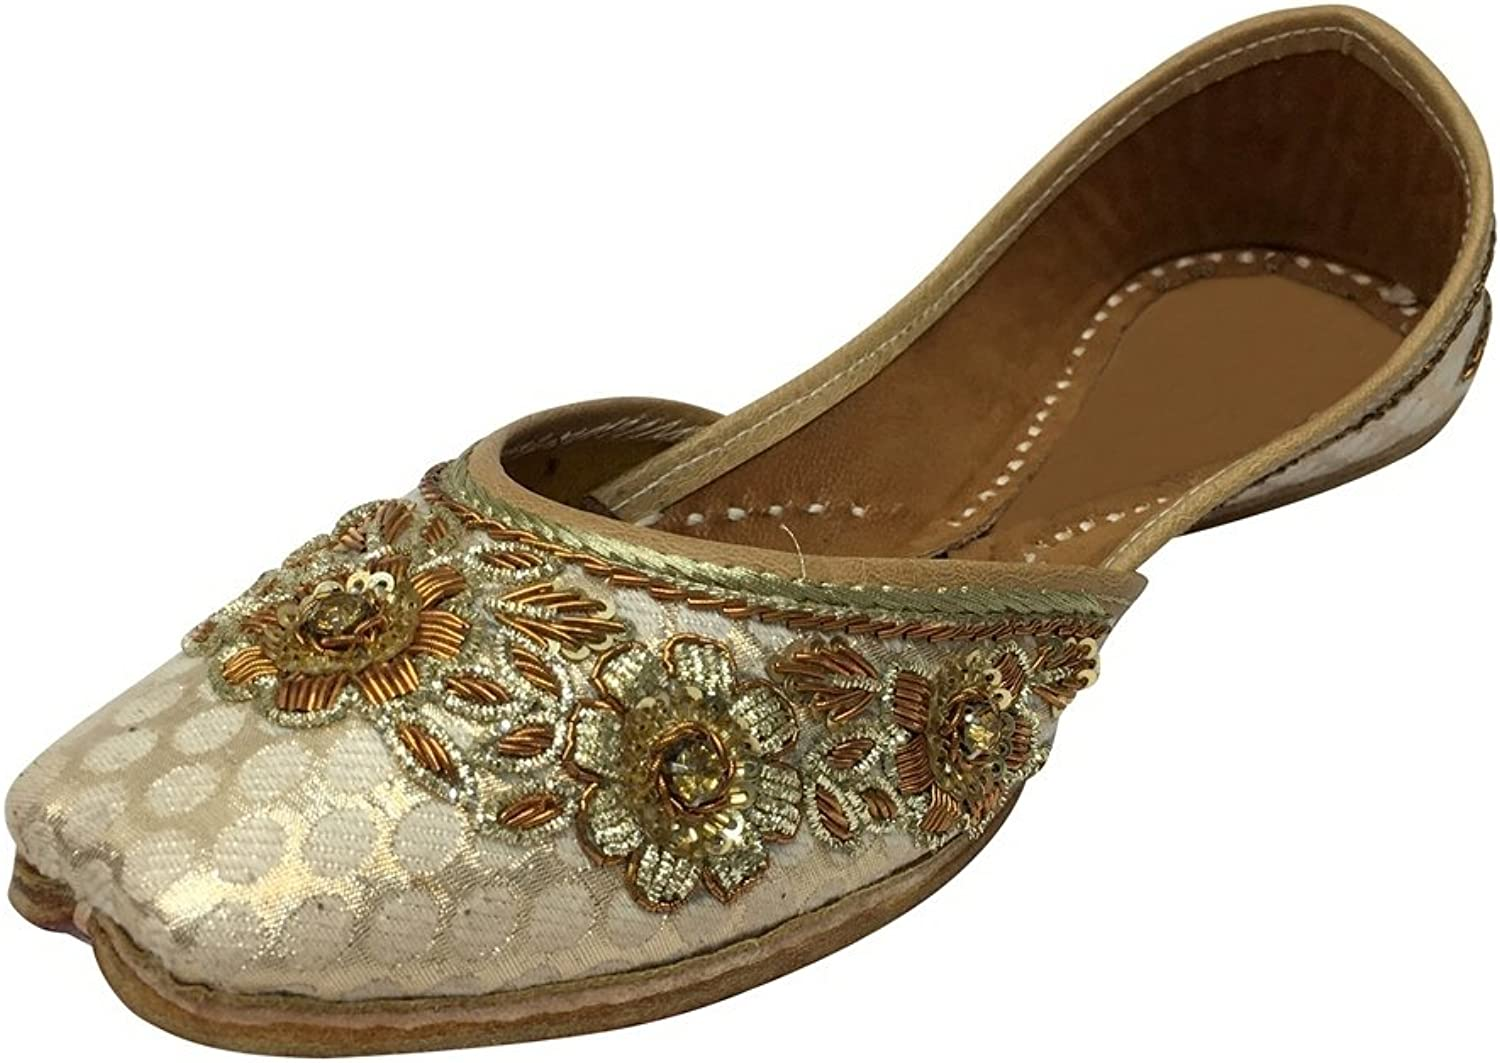 Step n Style Ladies Ethnic Traditional Flat Sandal Punjabi Jutti Khussa Saree shoes